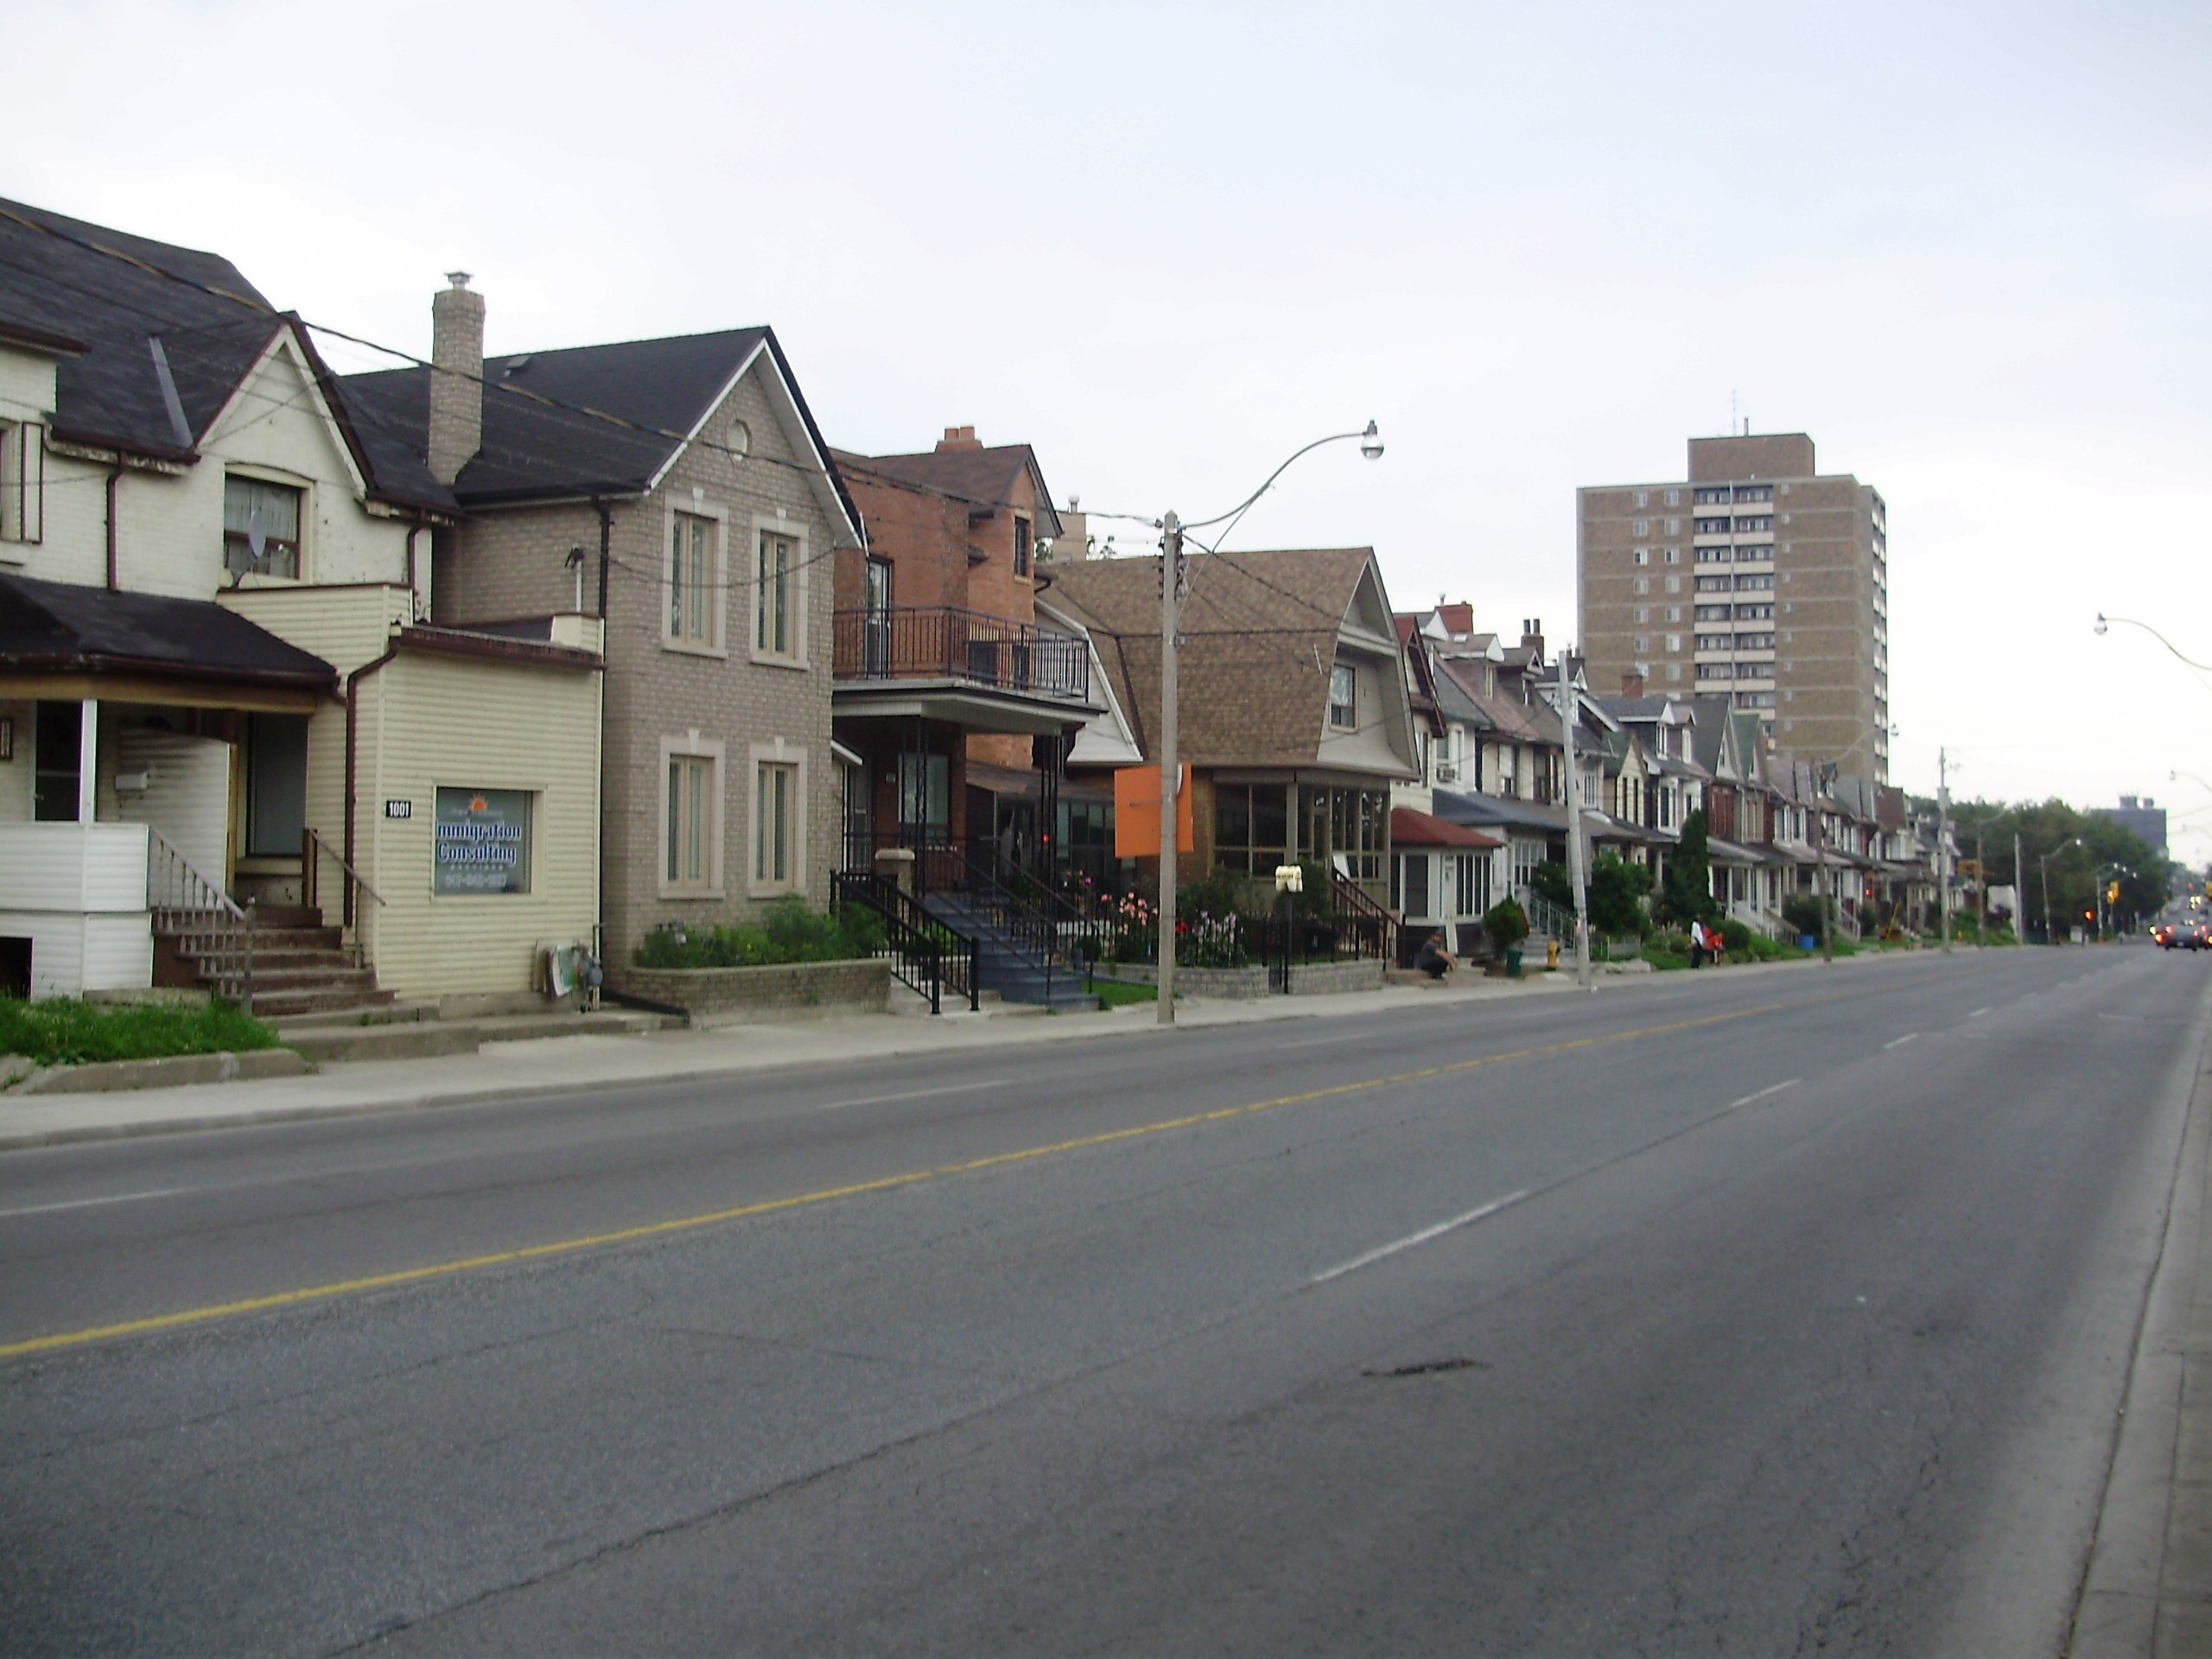 Dating Dufferin And Dupont Street